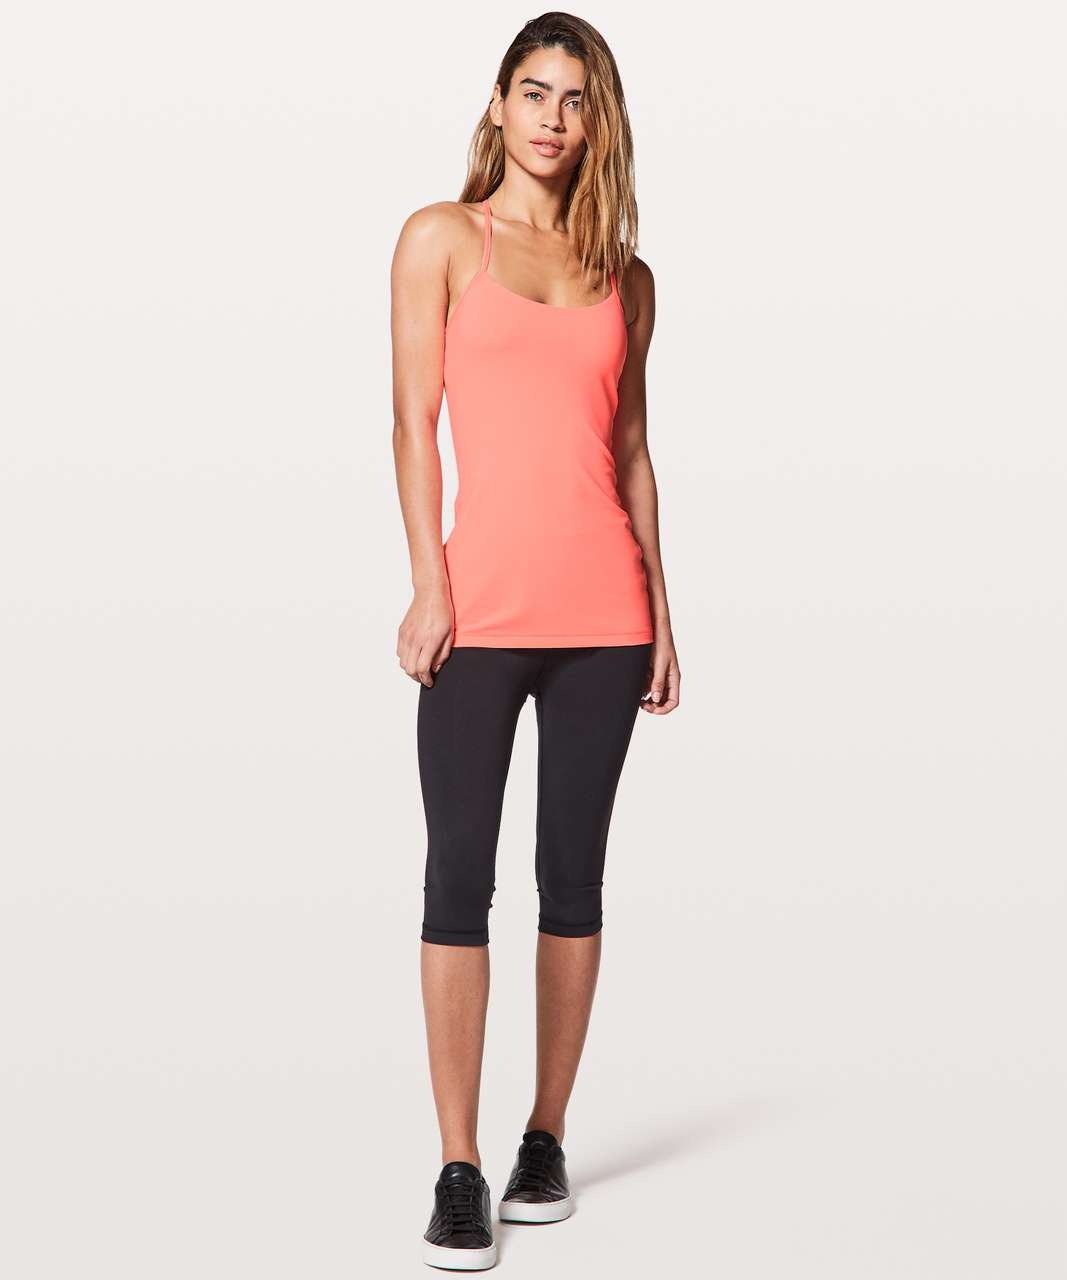 Lululemon Power Pose Tank *Light Support For A/B Cup - Sunset